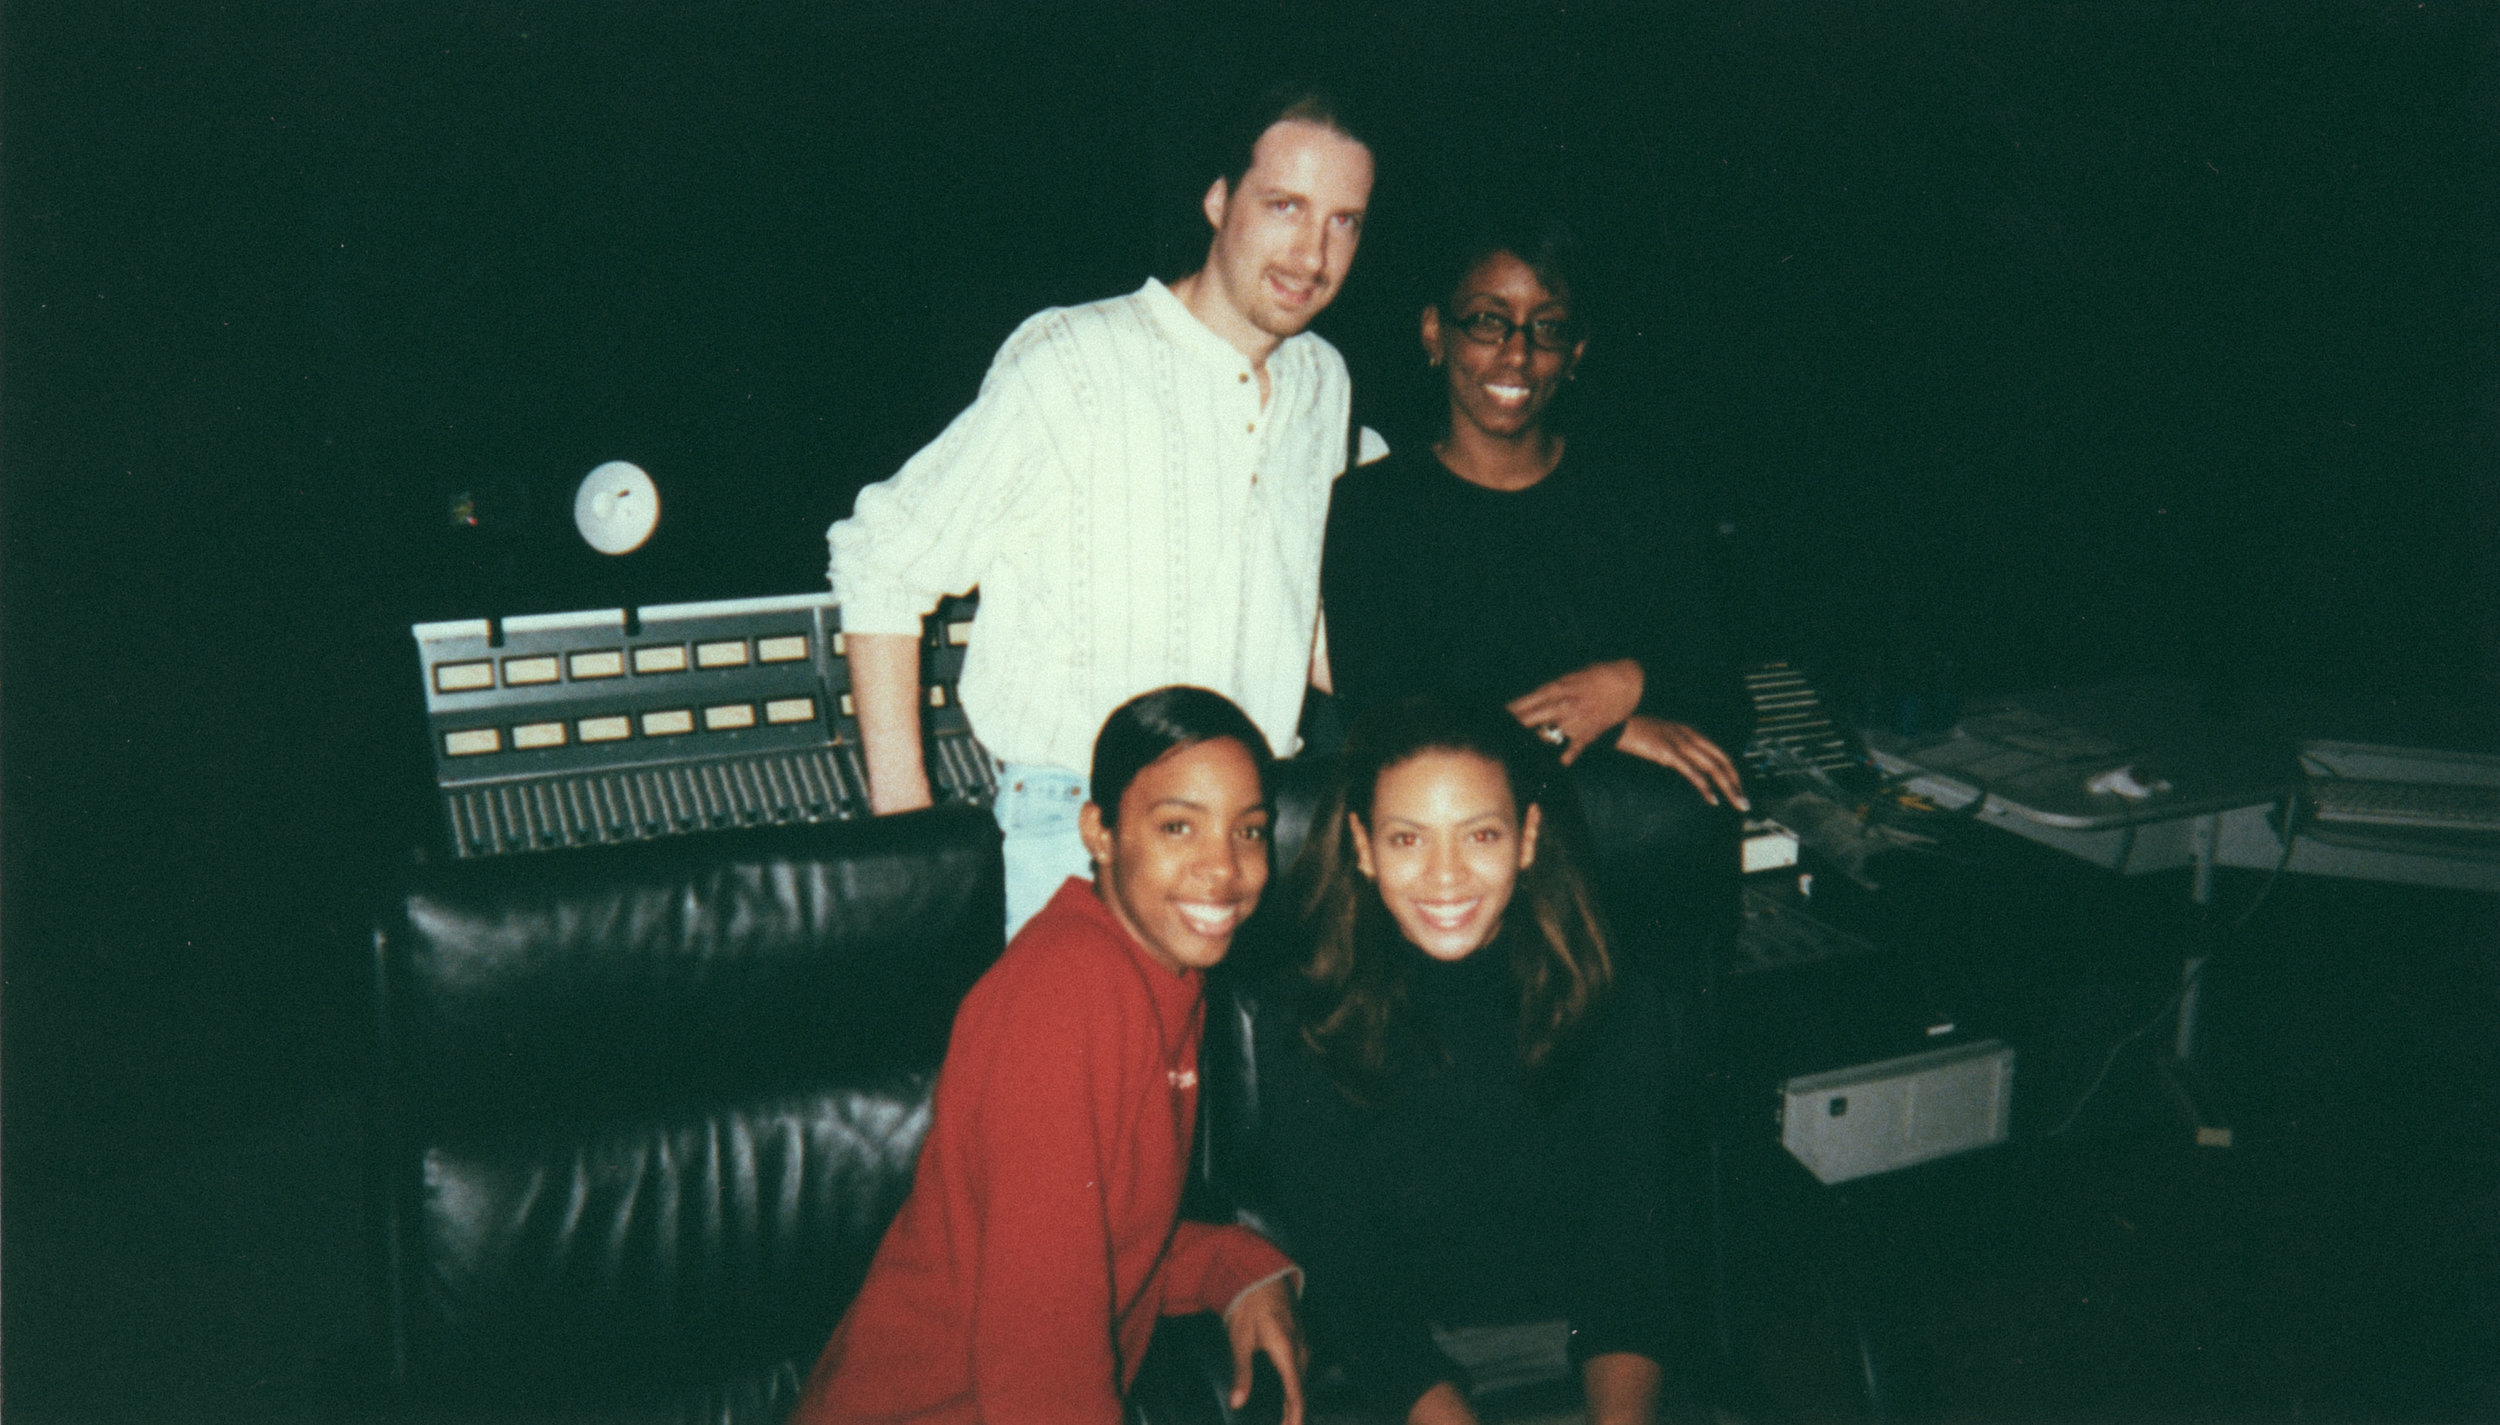 In Session with Destiny's Child (Kelly Rowland and Beyonce) at Dallas Sound Lab